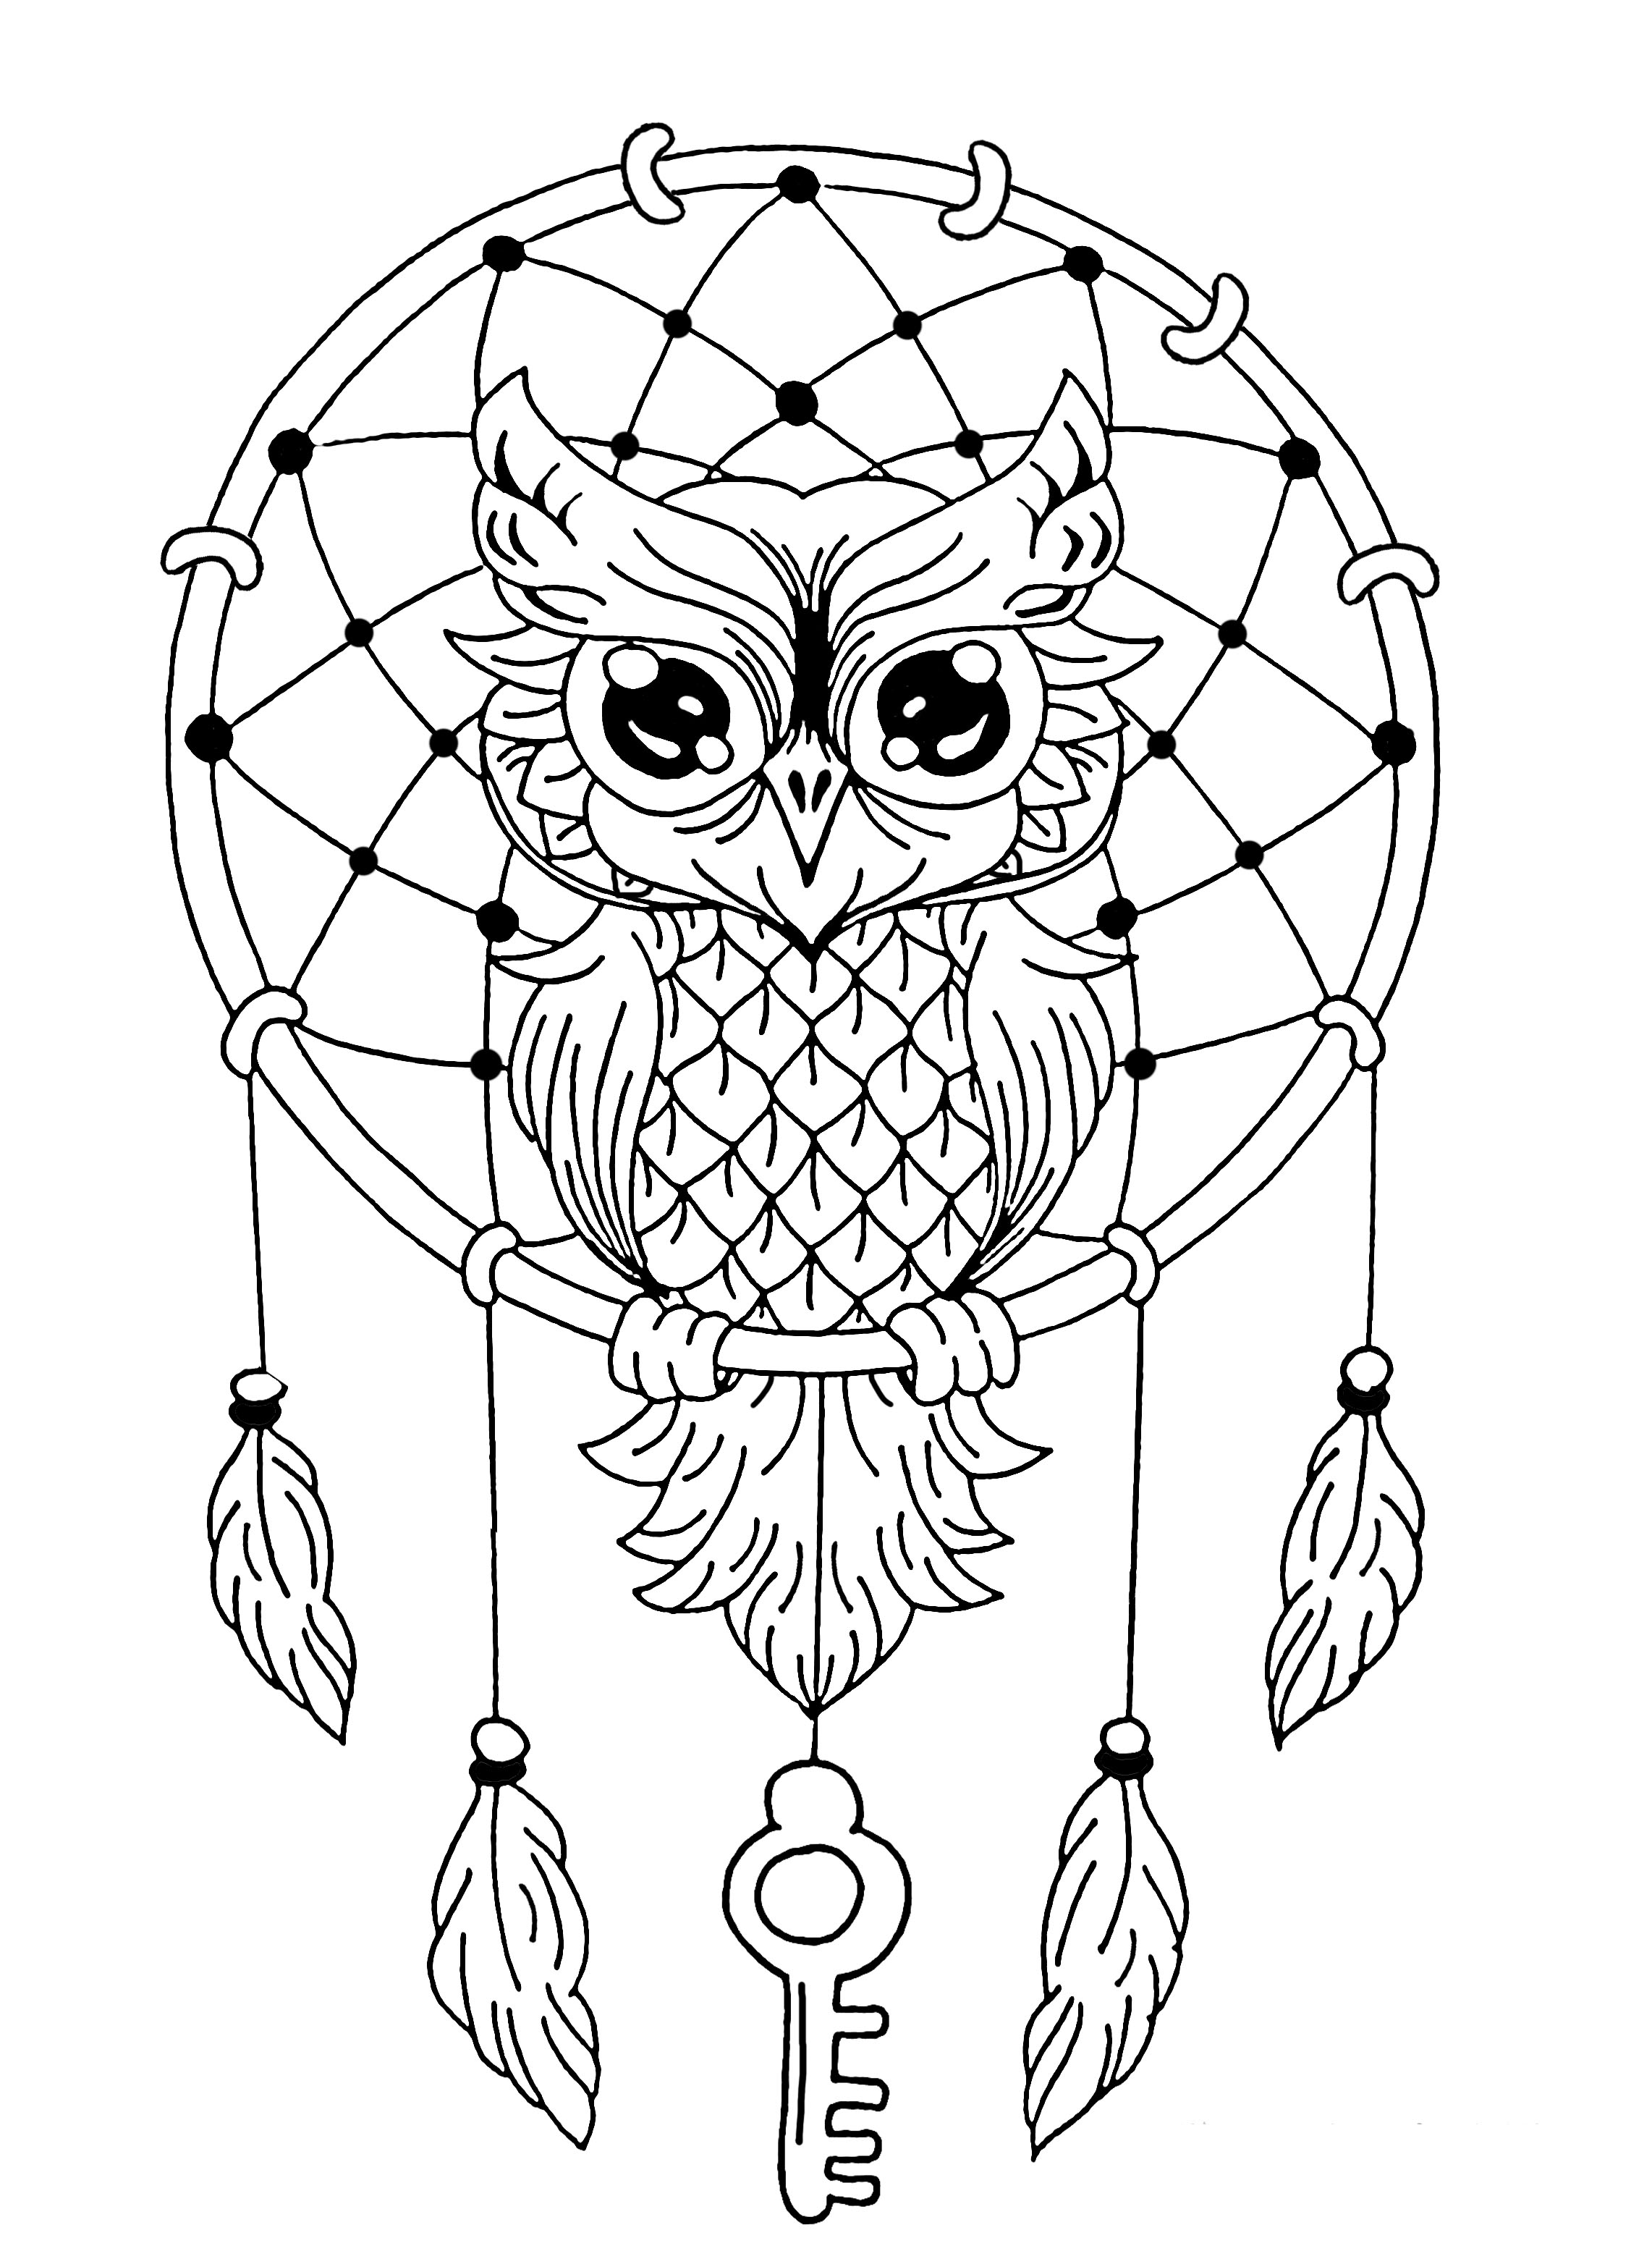 coloring owl dreamcatcher free to print - Coloring The Pictures